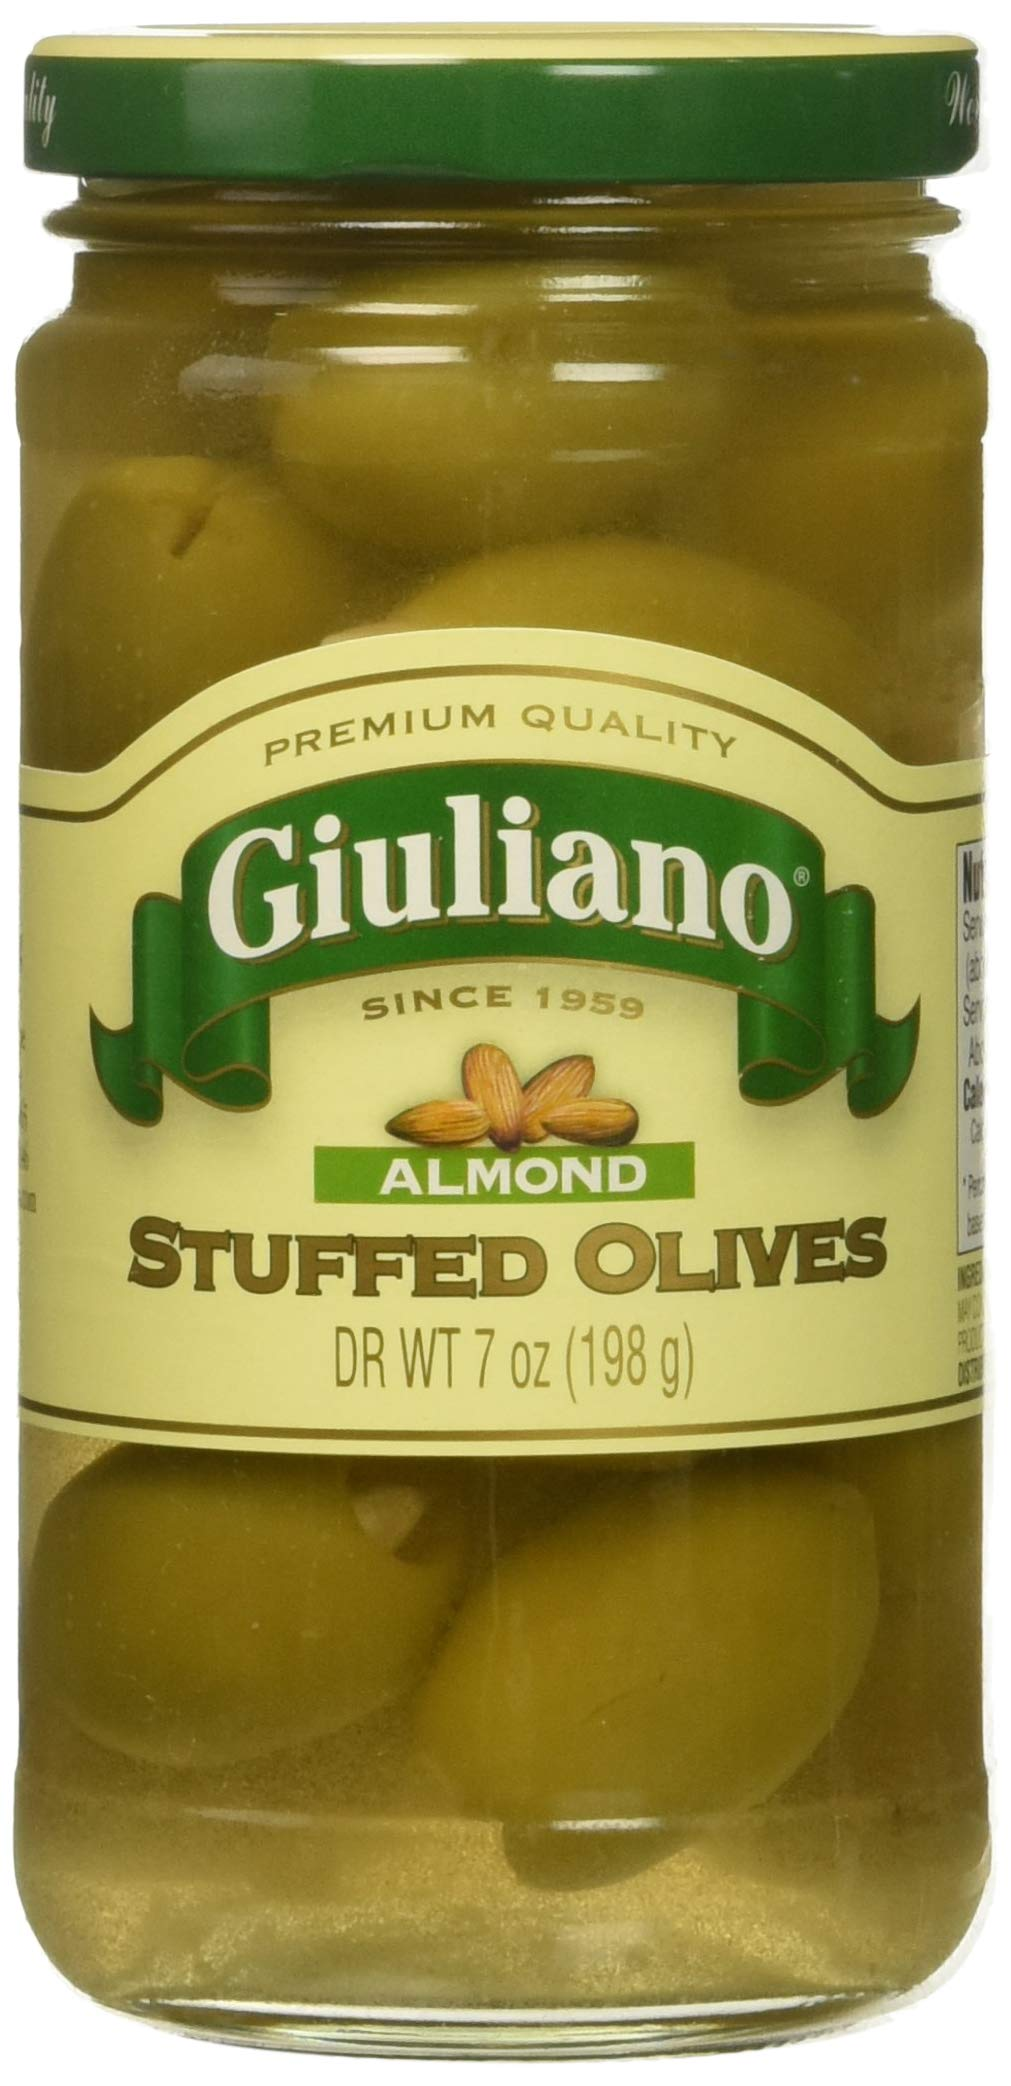 Giuliano Almond Stuffed Olives, 7 Ounce (Pack of 6) by Giulianos